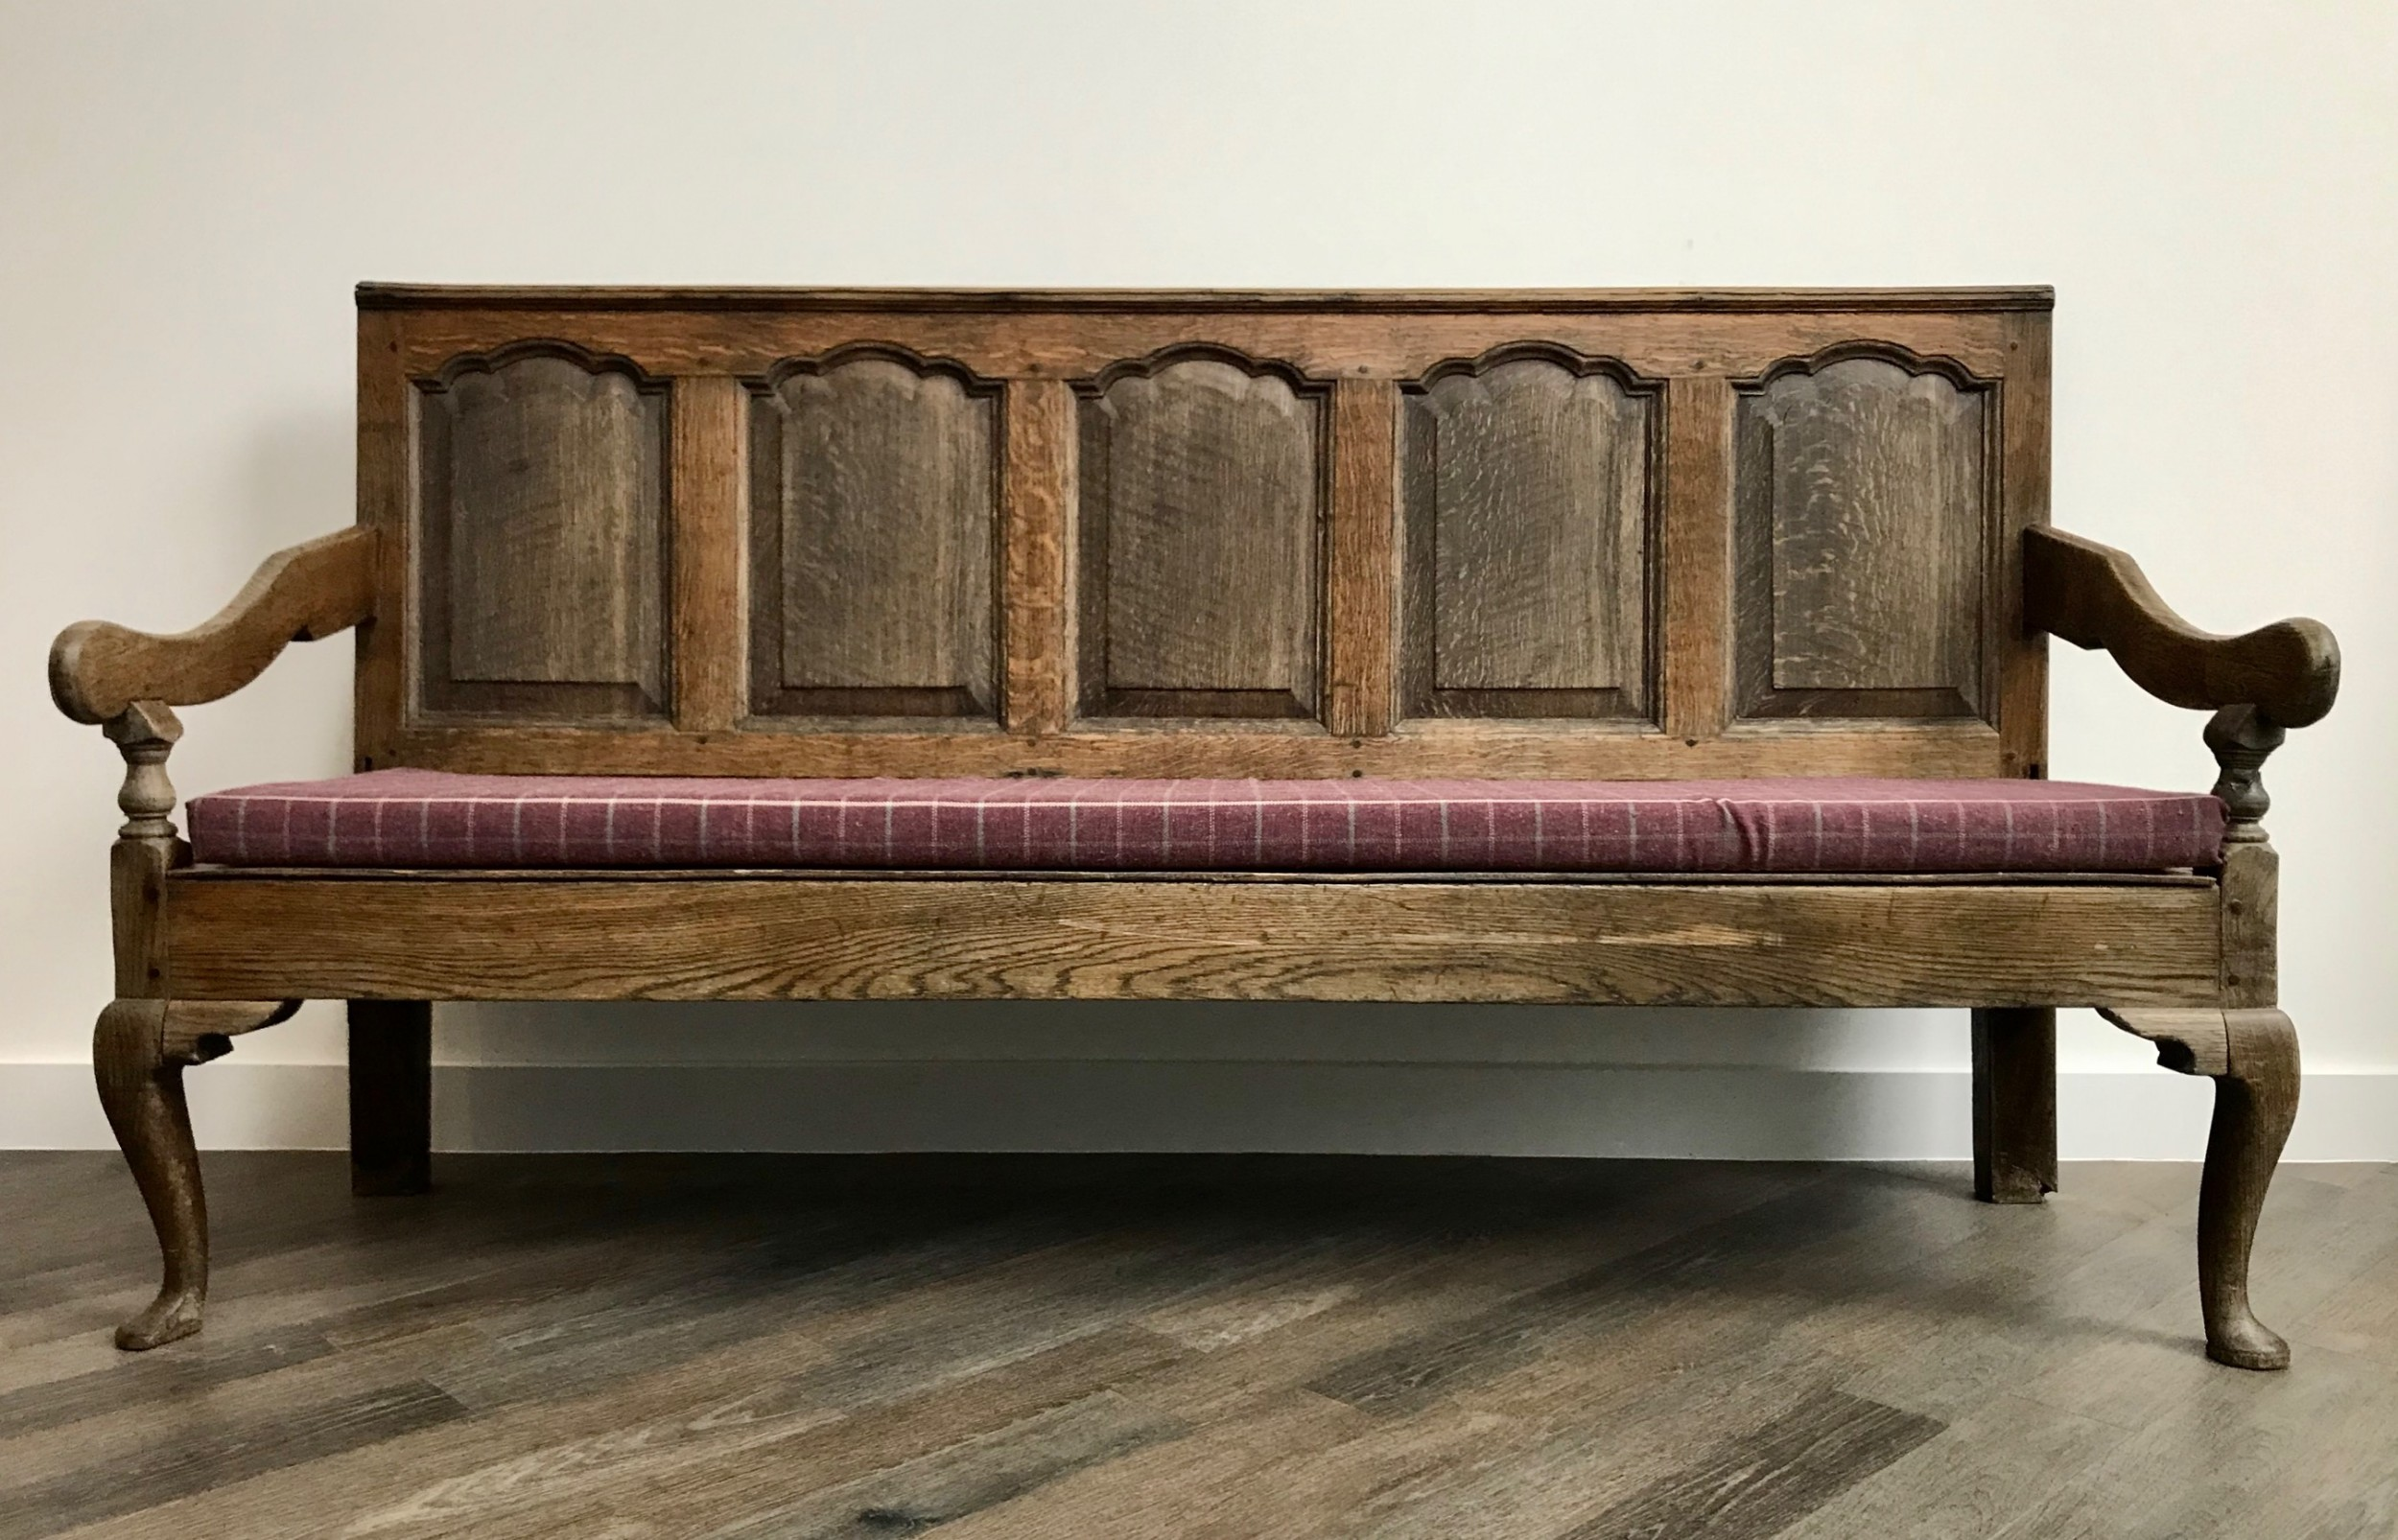 a very handsome georgian oak panelled settle with modern checked wool seat cushion 18th century english furniture